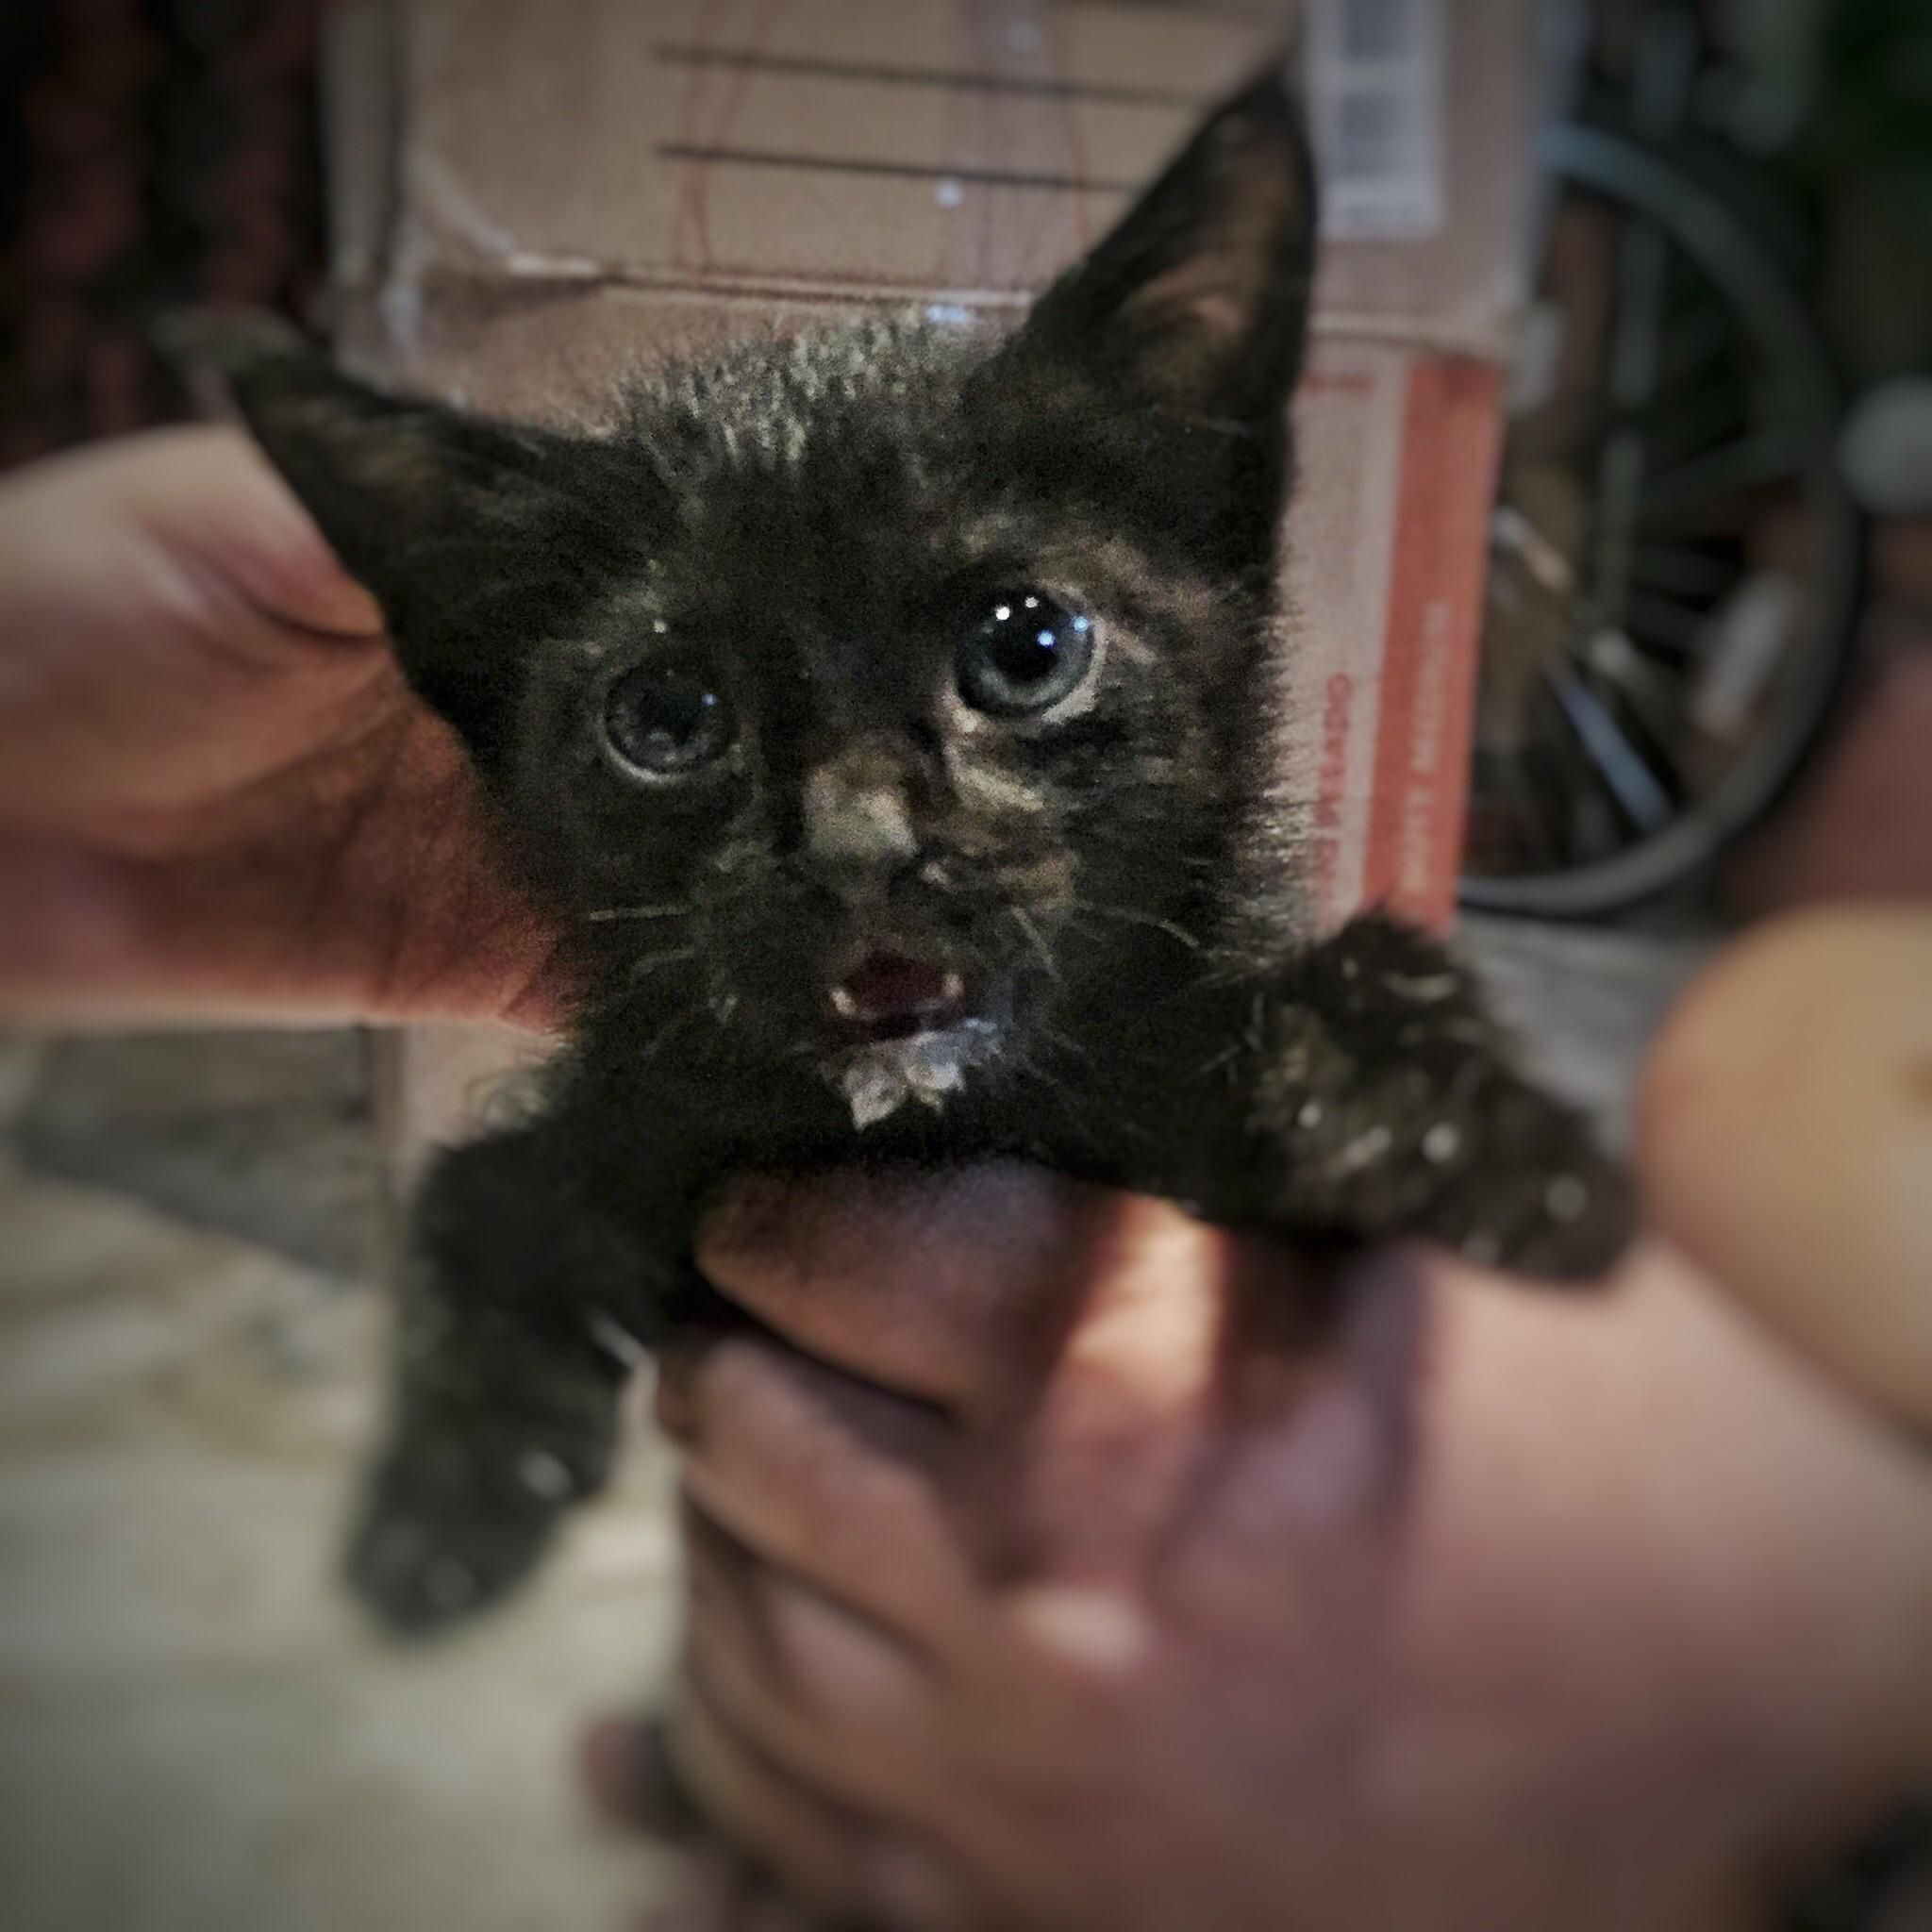 My Six Year Old Brought Home This Stray Kitten Yesterday Her First Rescue She Calls Her My Sprinkles Http Ift Tt 2jbceon Kitten Cute Cats Aww